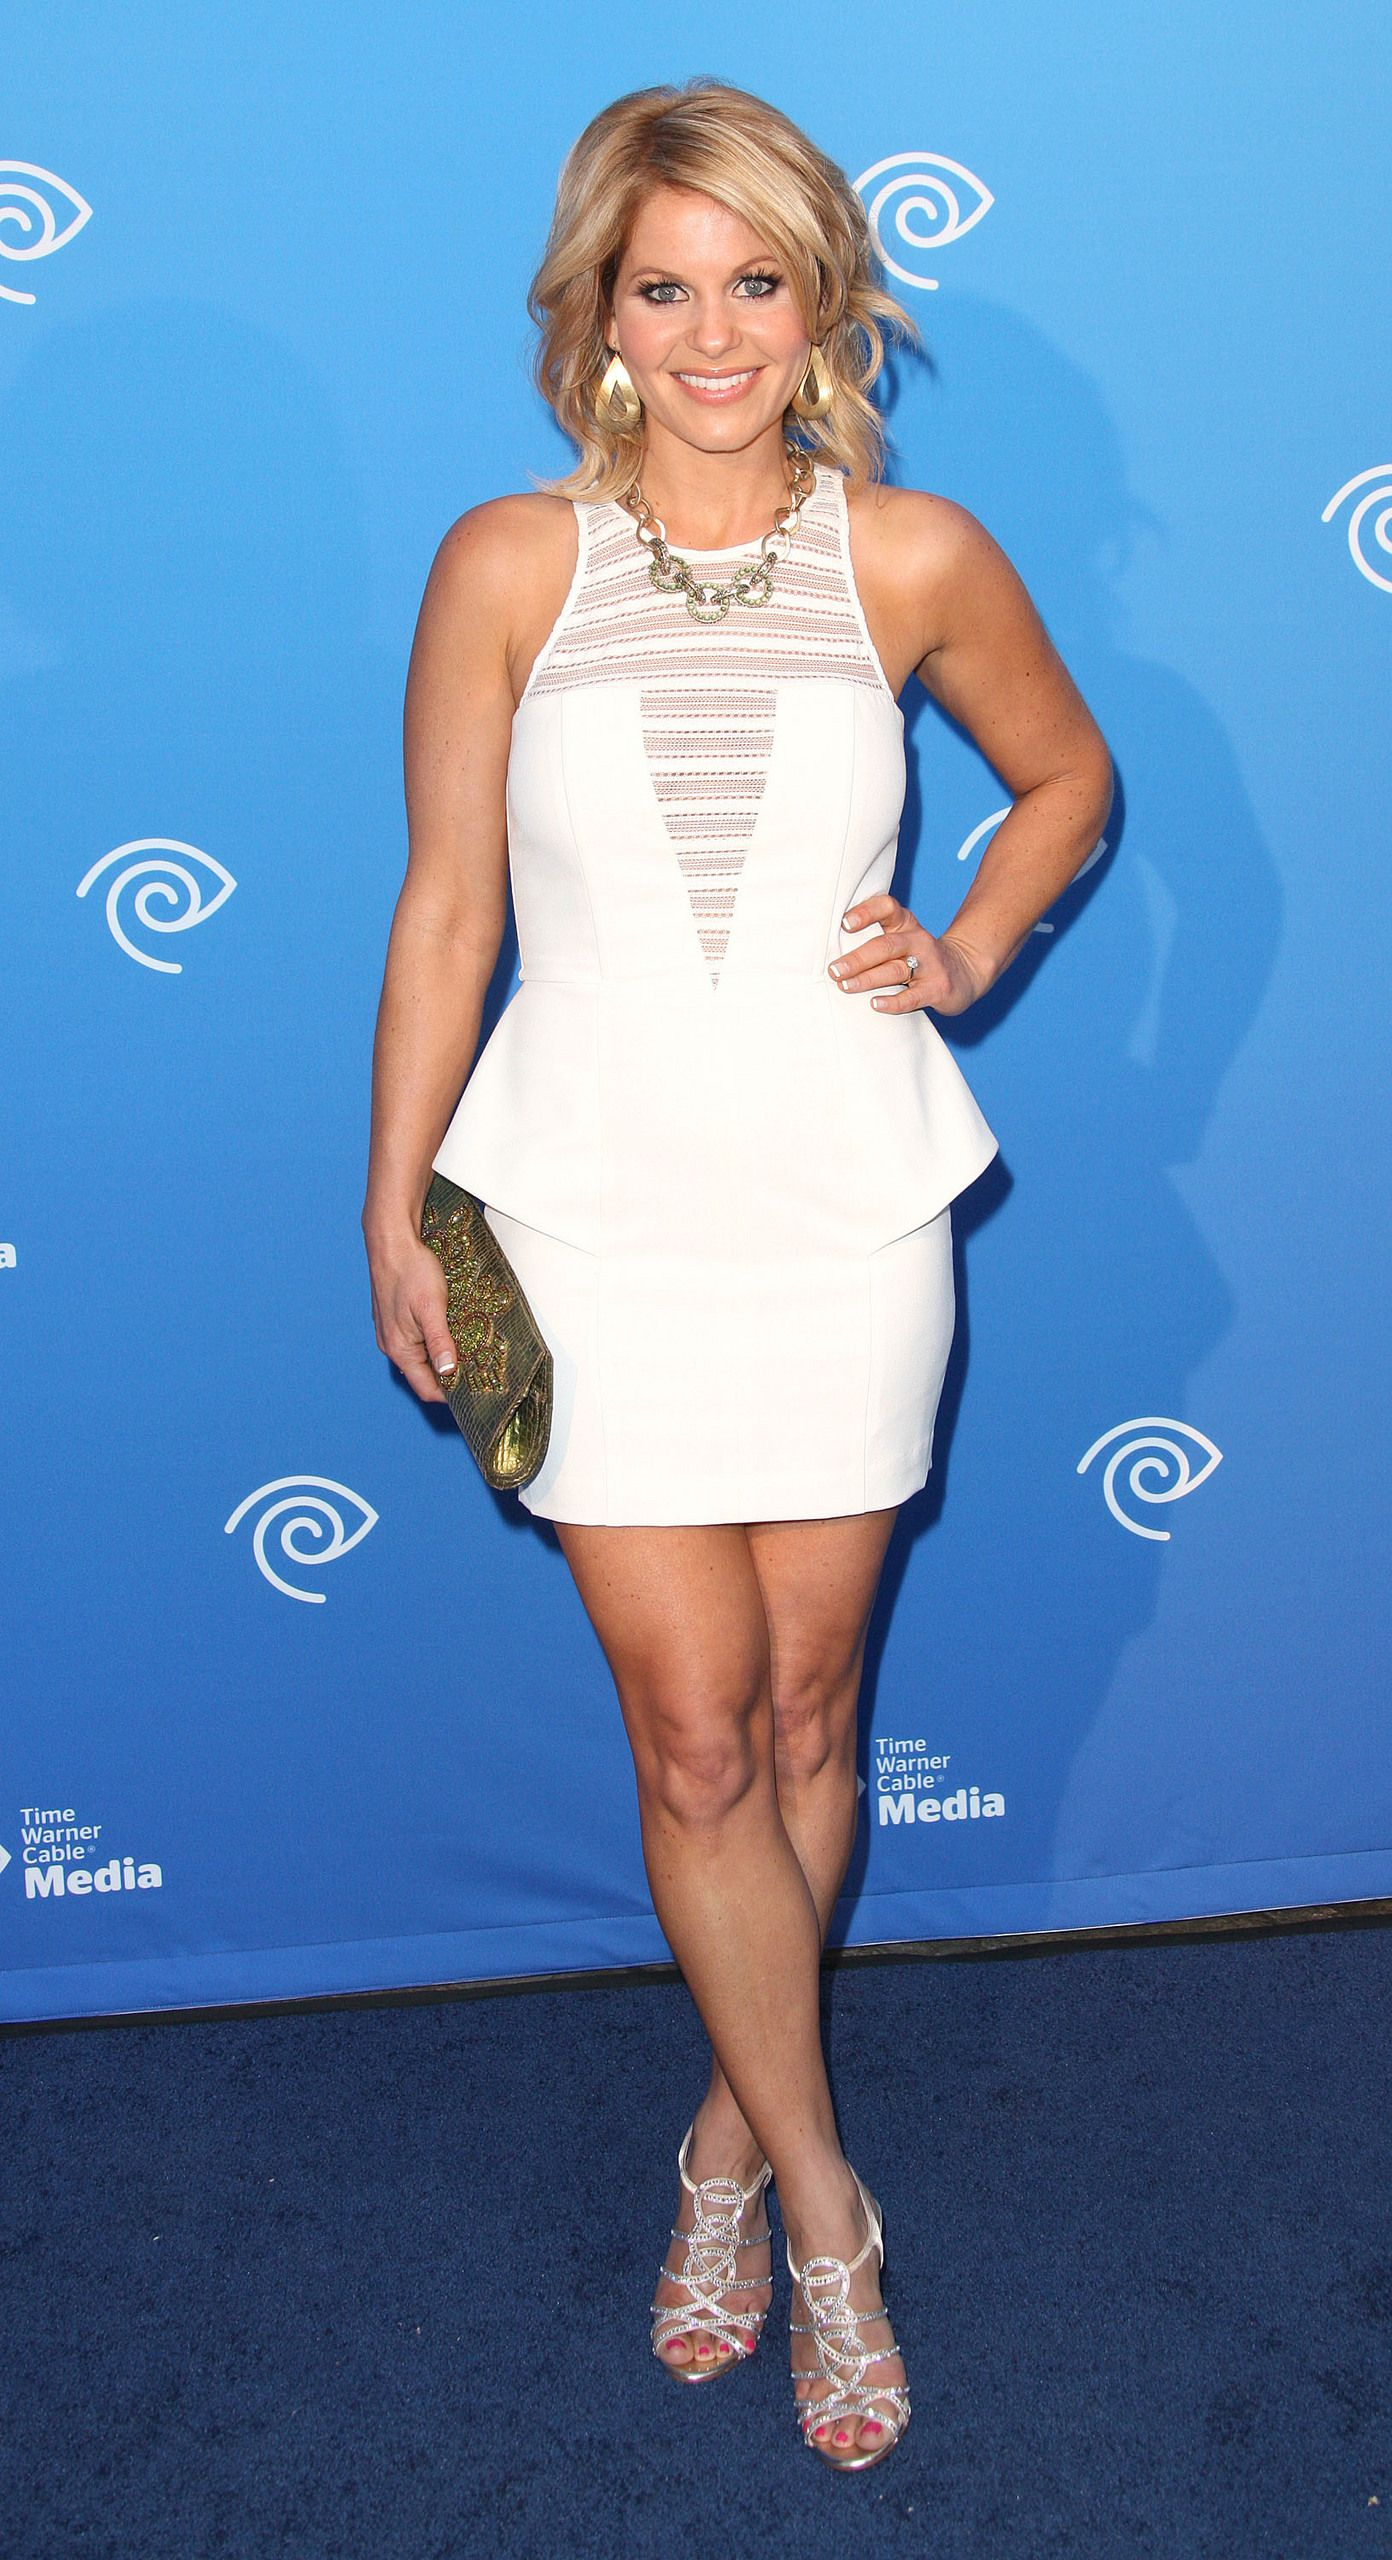 Time Warner Cable Media's 'Cabletime' Upfront event at Hollywood Roosevelt Hotel - candace-